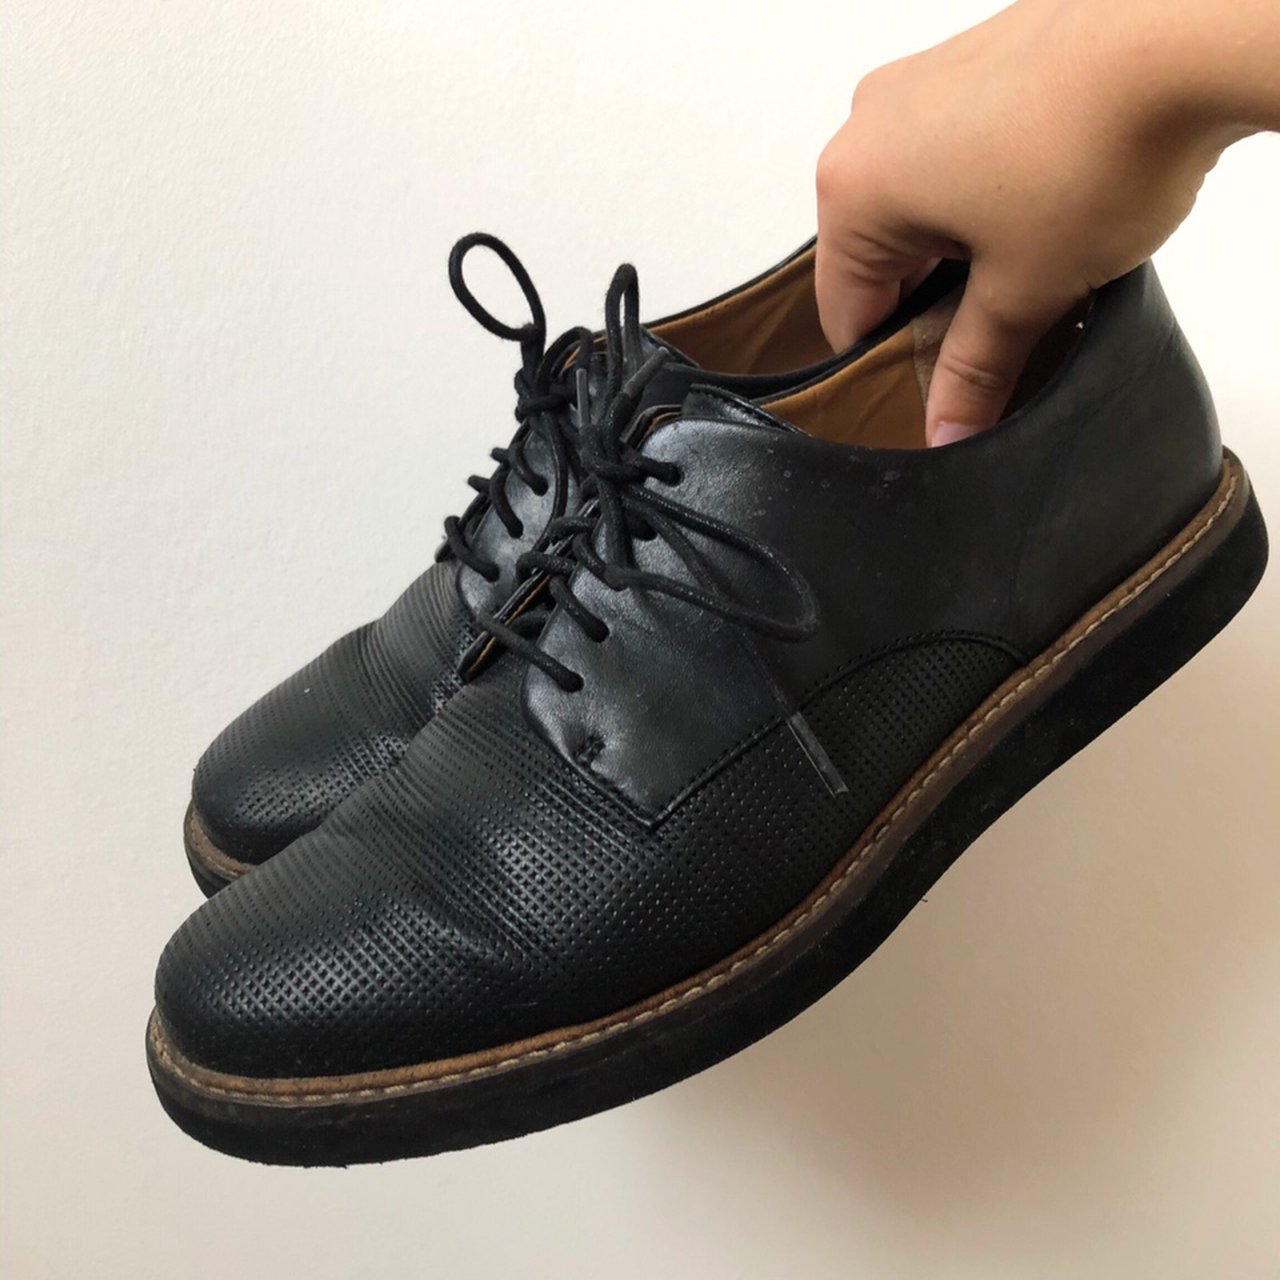 BLACK BROGUES CLARKS SIZE 4 worn but